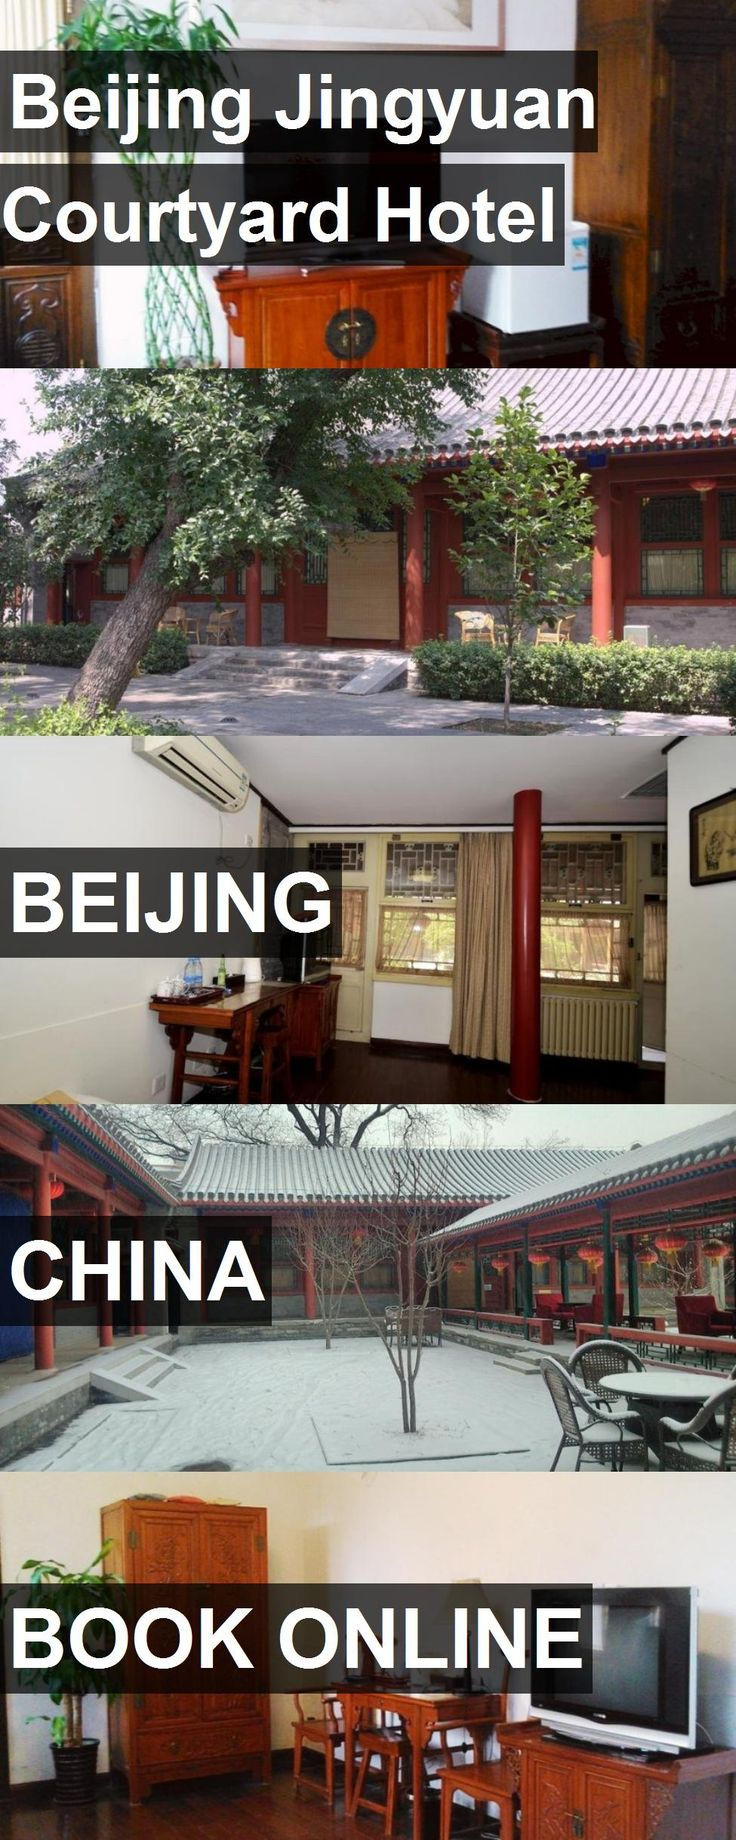 Beijing Jingyuan Courtyard Hotel in Beijing, China. For more information, photos, reviews and best prices please follow the link. #China #Beijing #travel #vacation #hotel